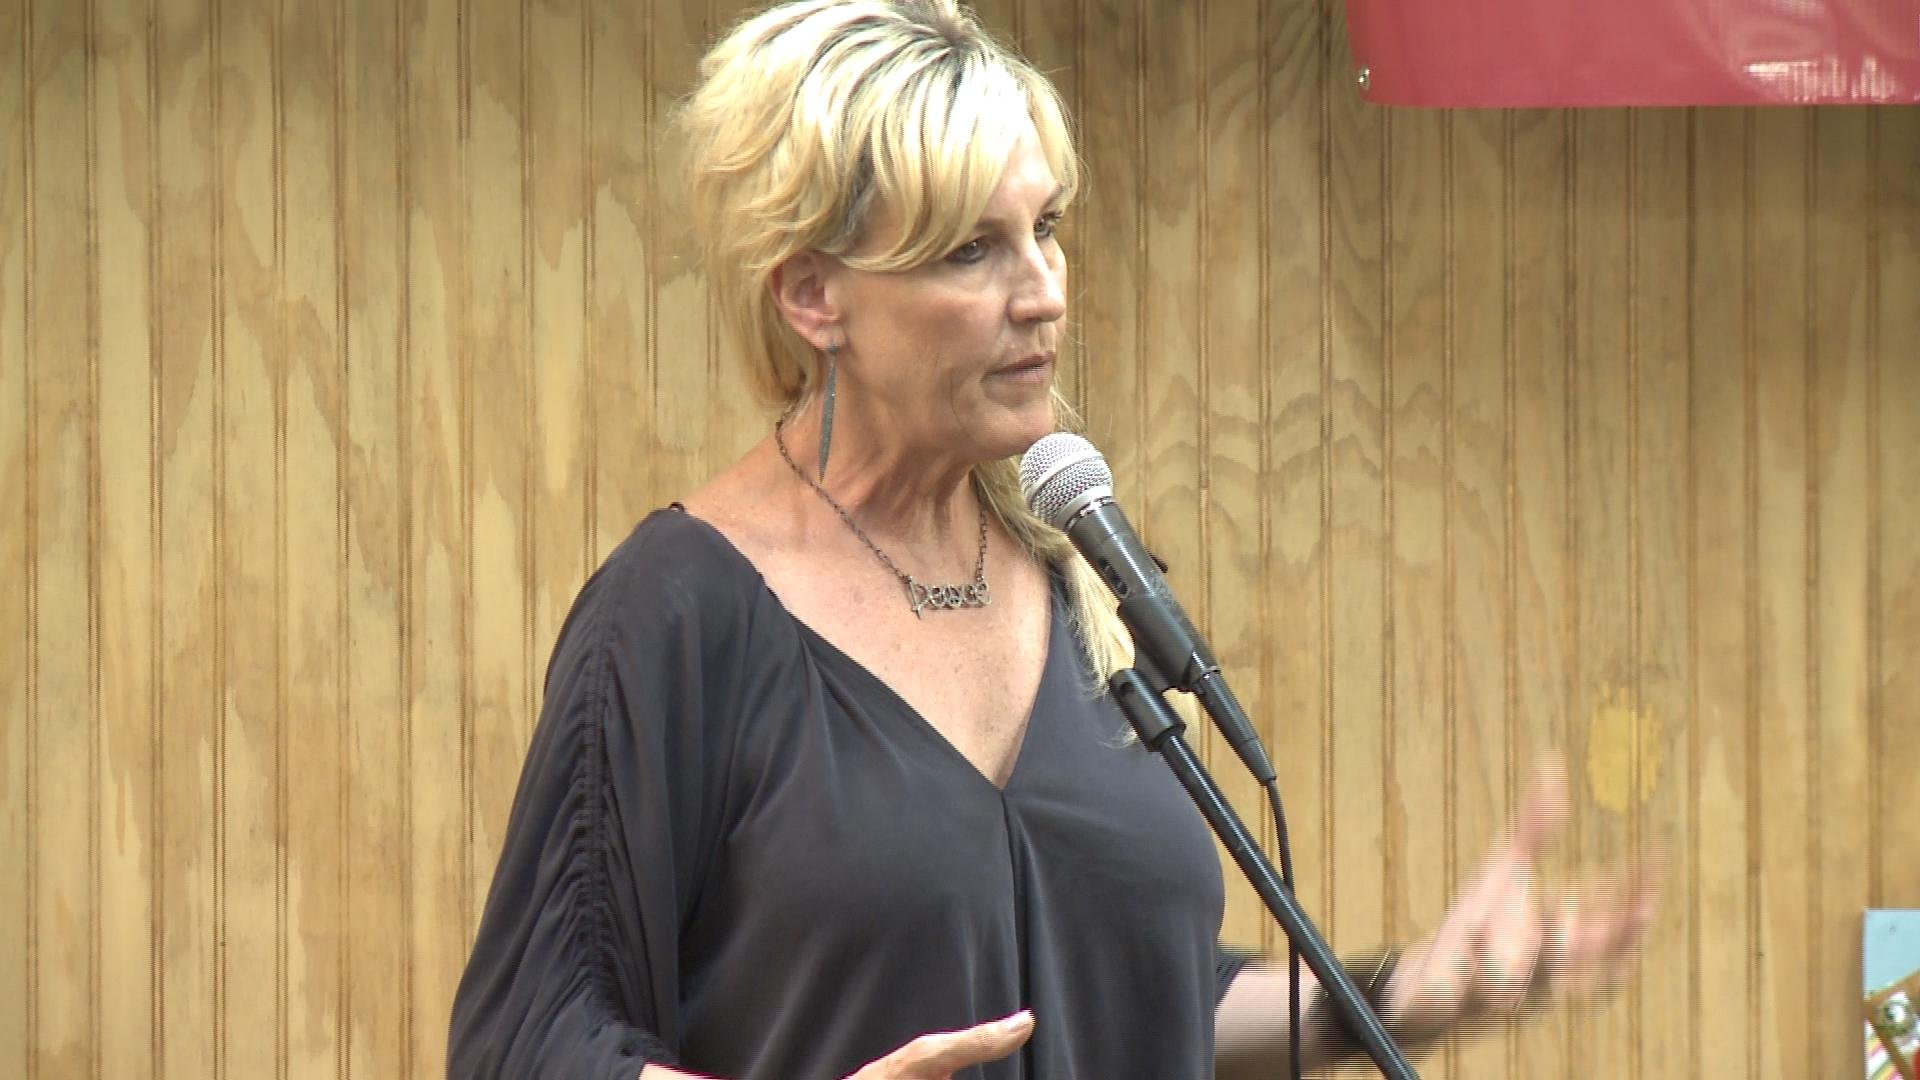 Environmental activist Erin Brockovich speaks on the issue of Hannibal's water quality at the American Legion hall on Wednesday night.